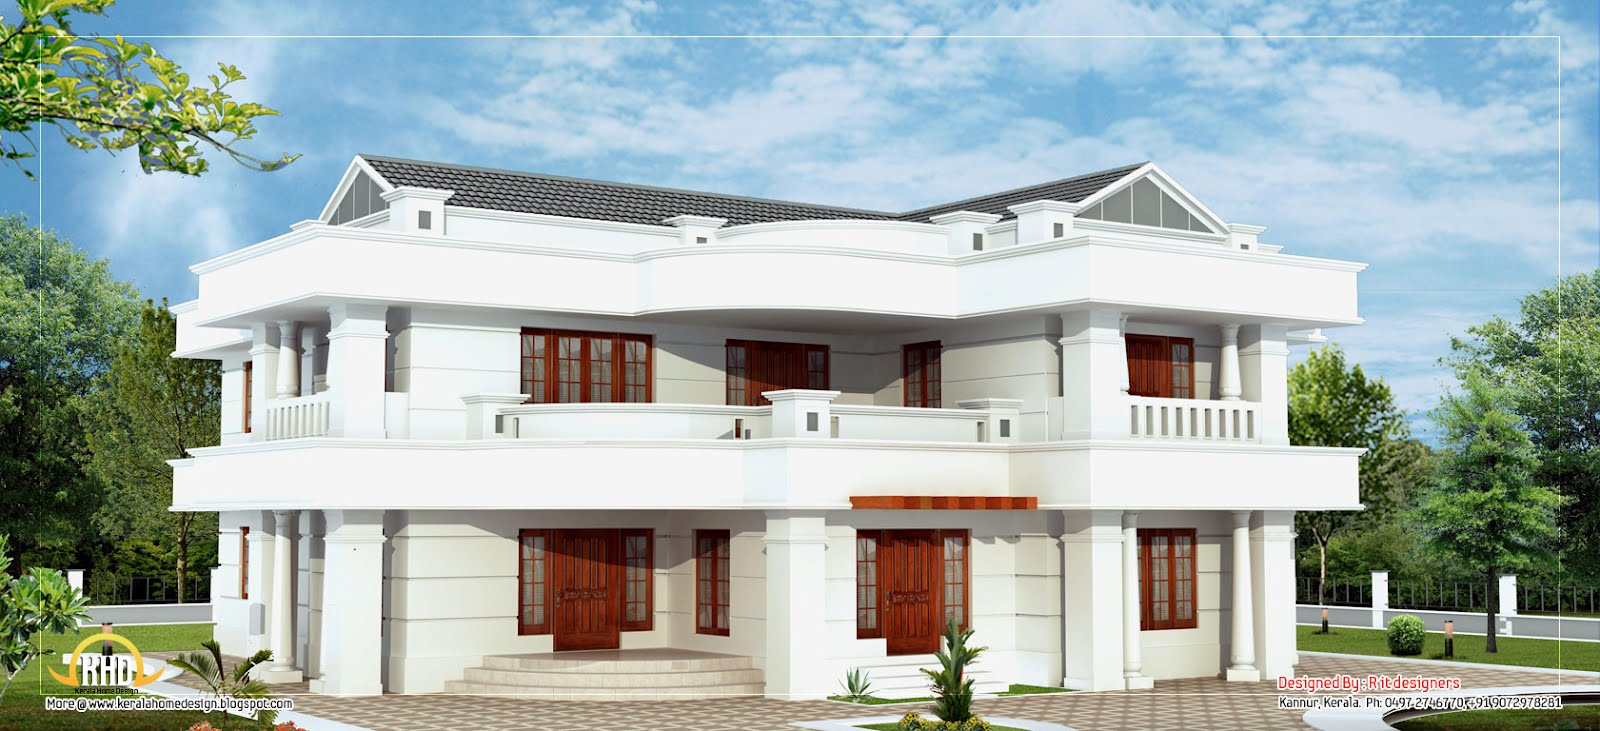 Beautiful 2 story house elevation 3665 sq ft indian for Beautiful double story houses